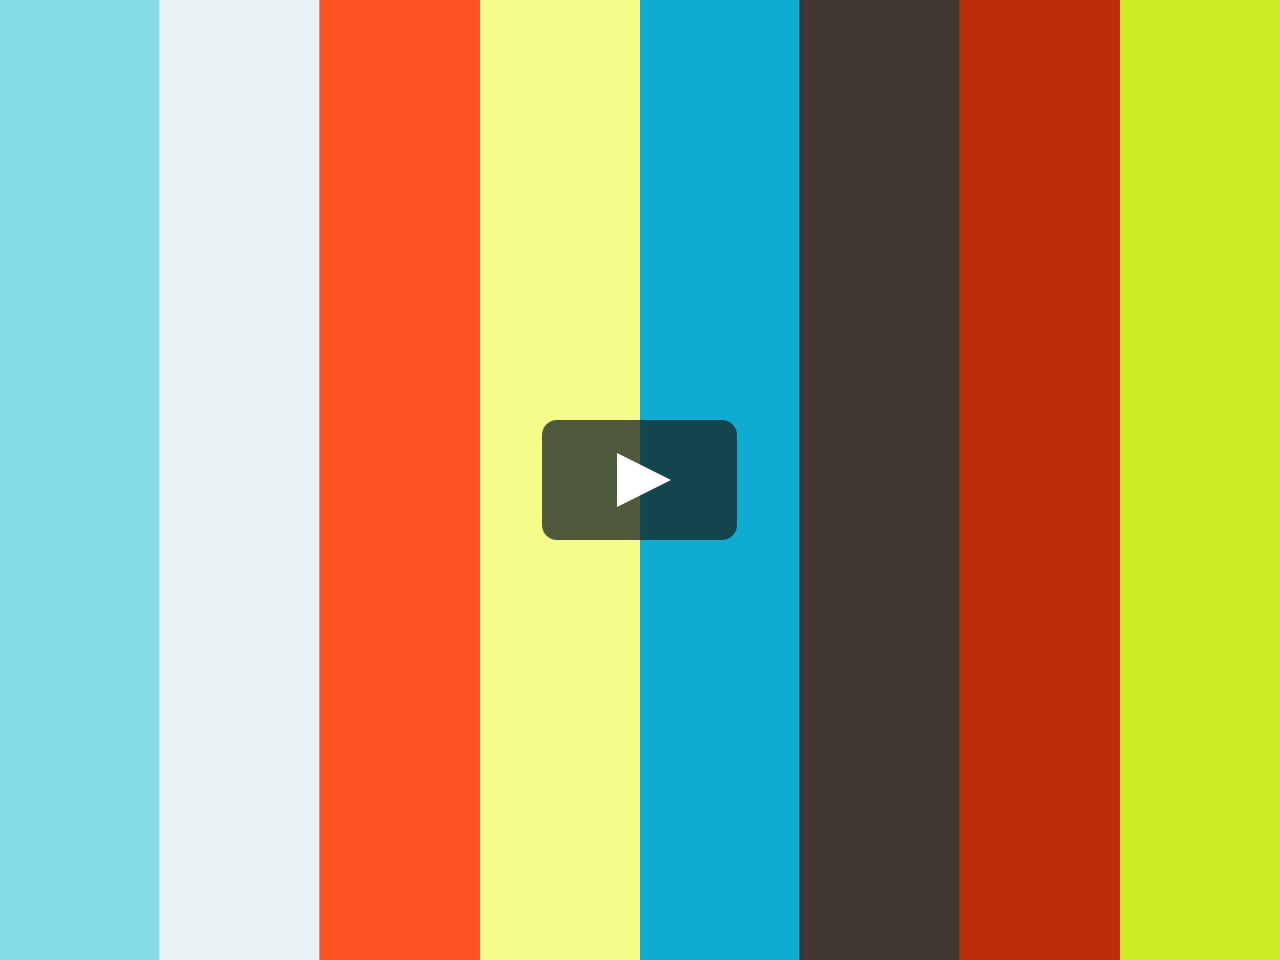 Slope intercept form on vimeo falaconquin